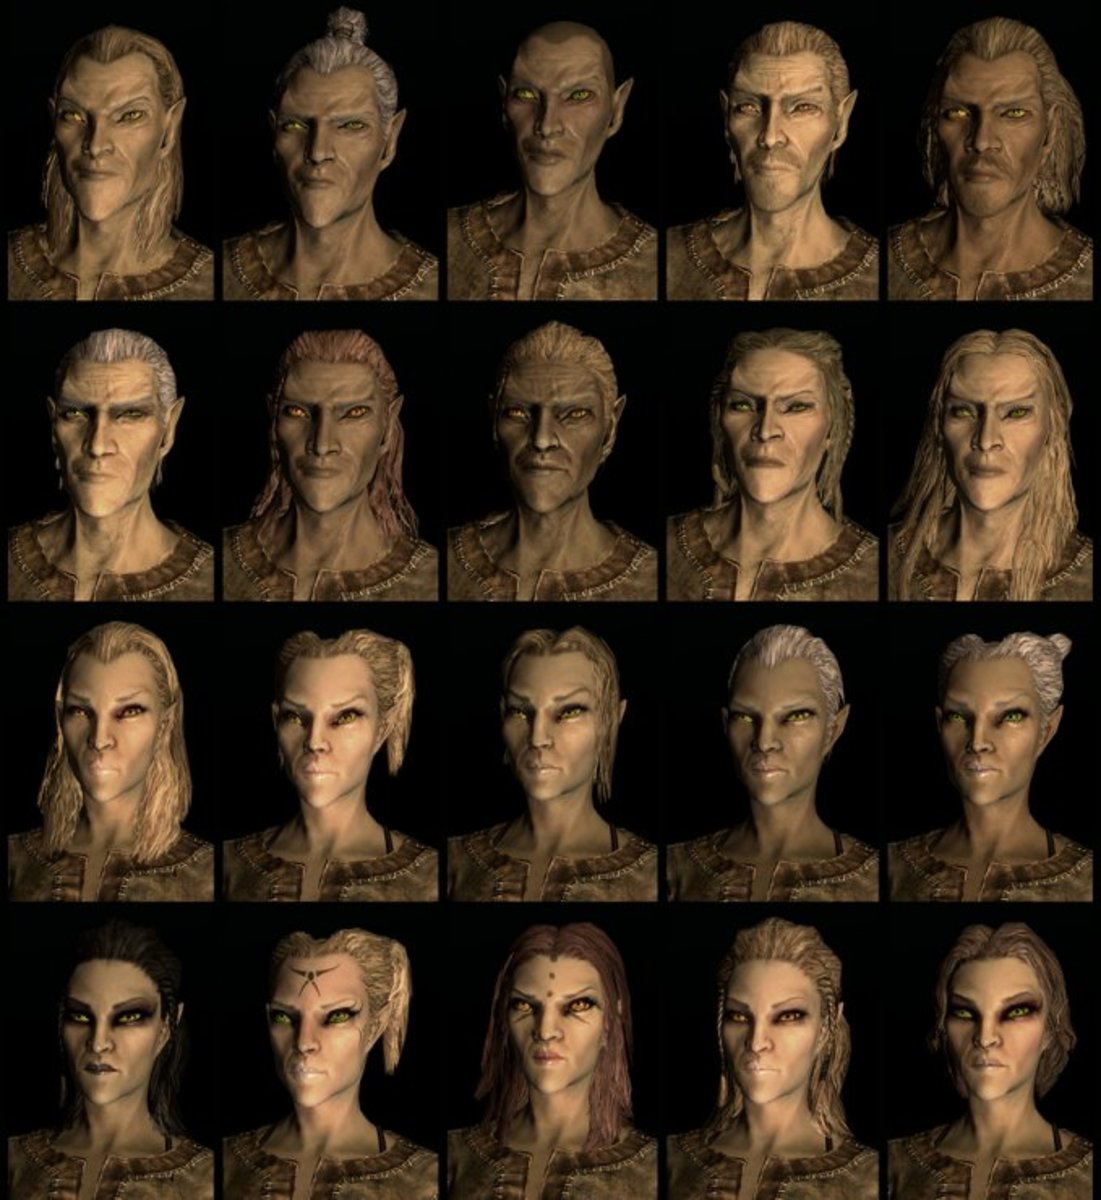 High Elf Or Altmer Race And Their Names In Skyrim The Elder Scrolls V